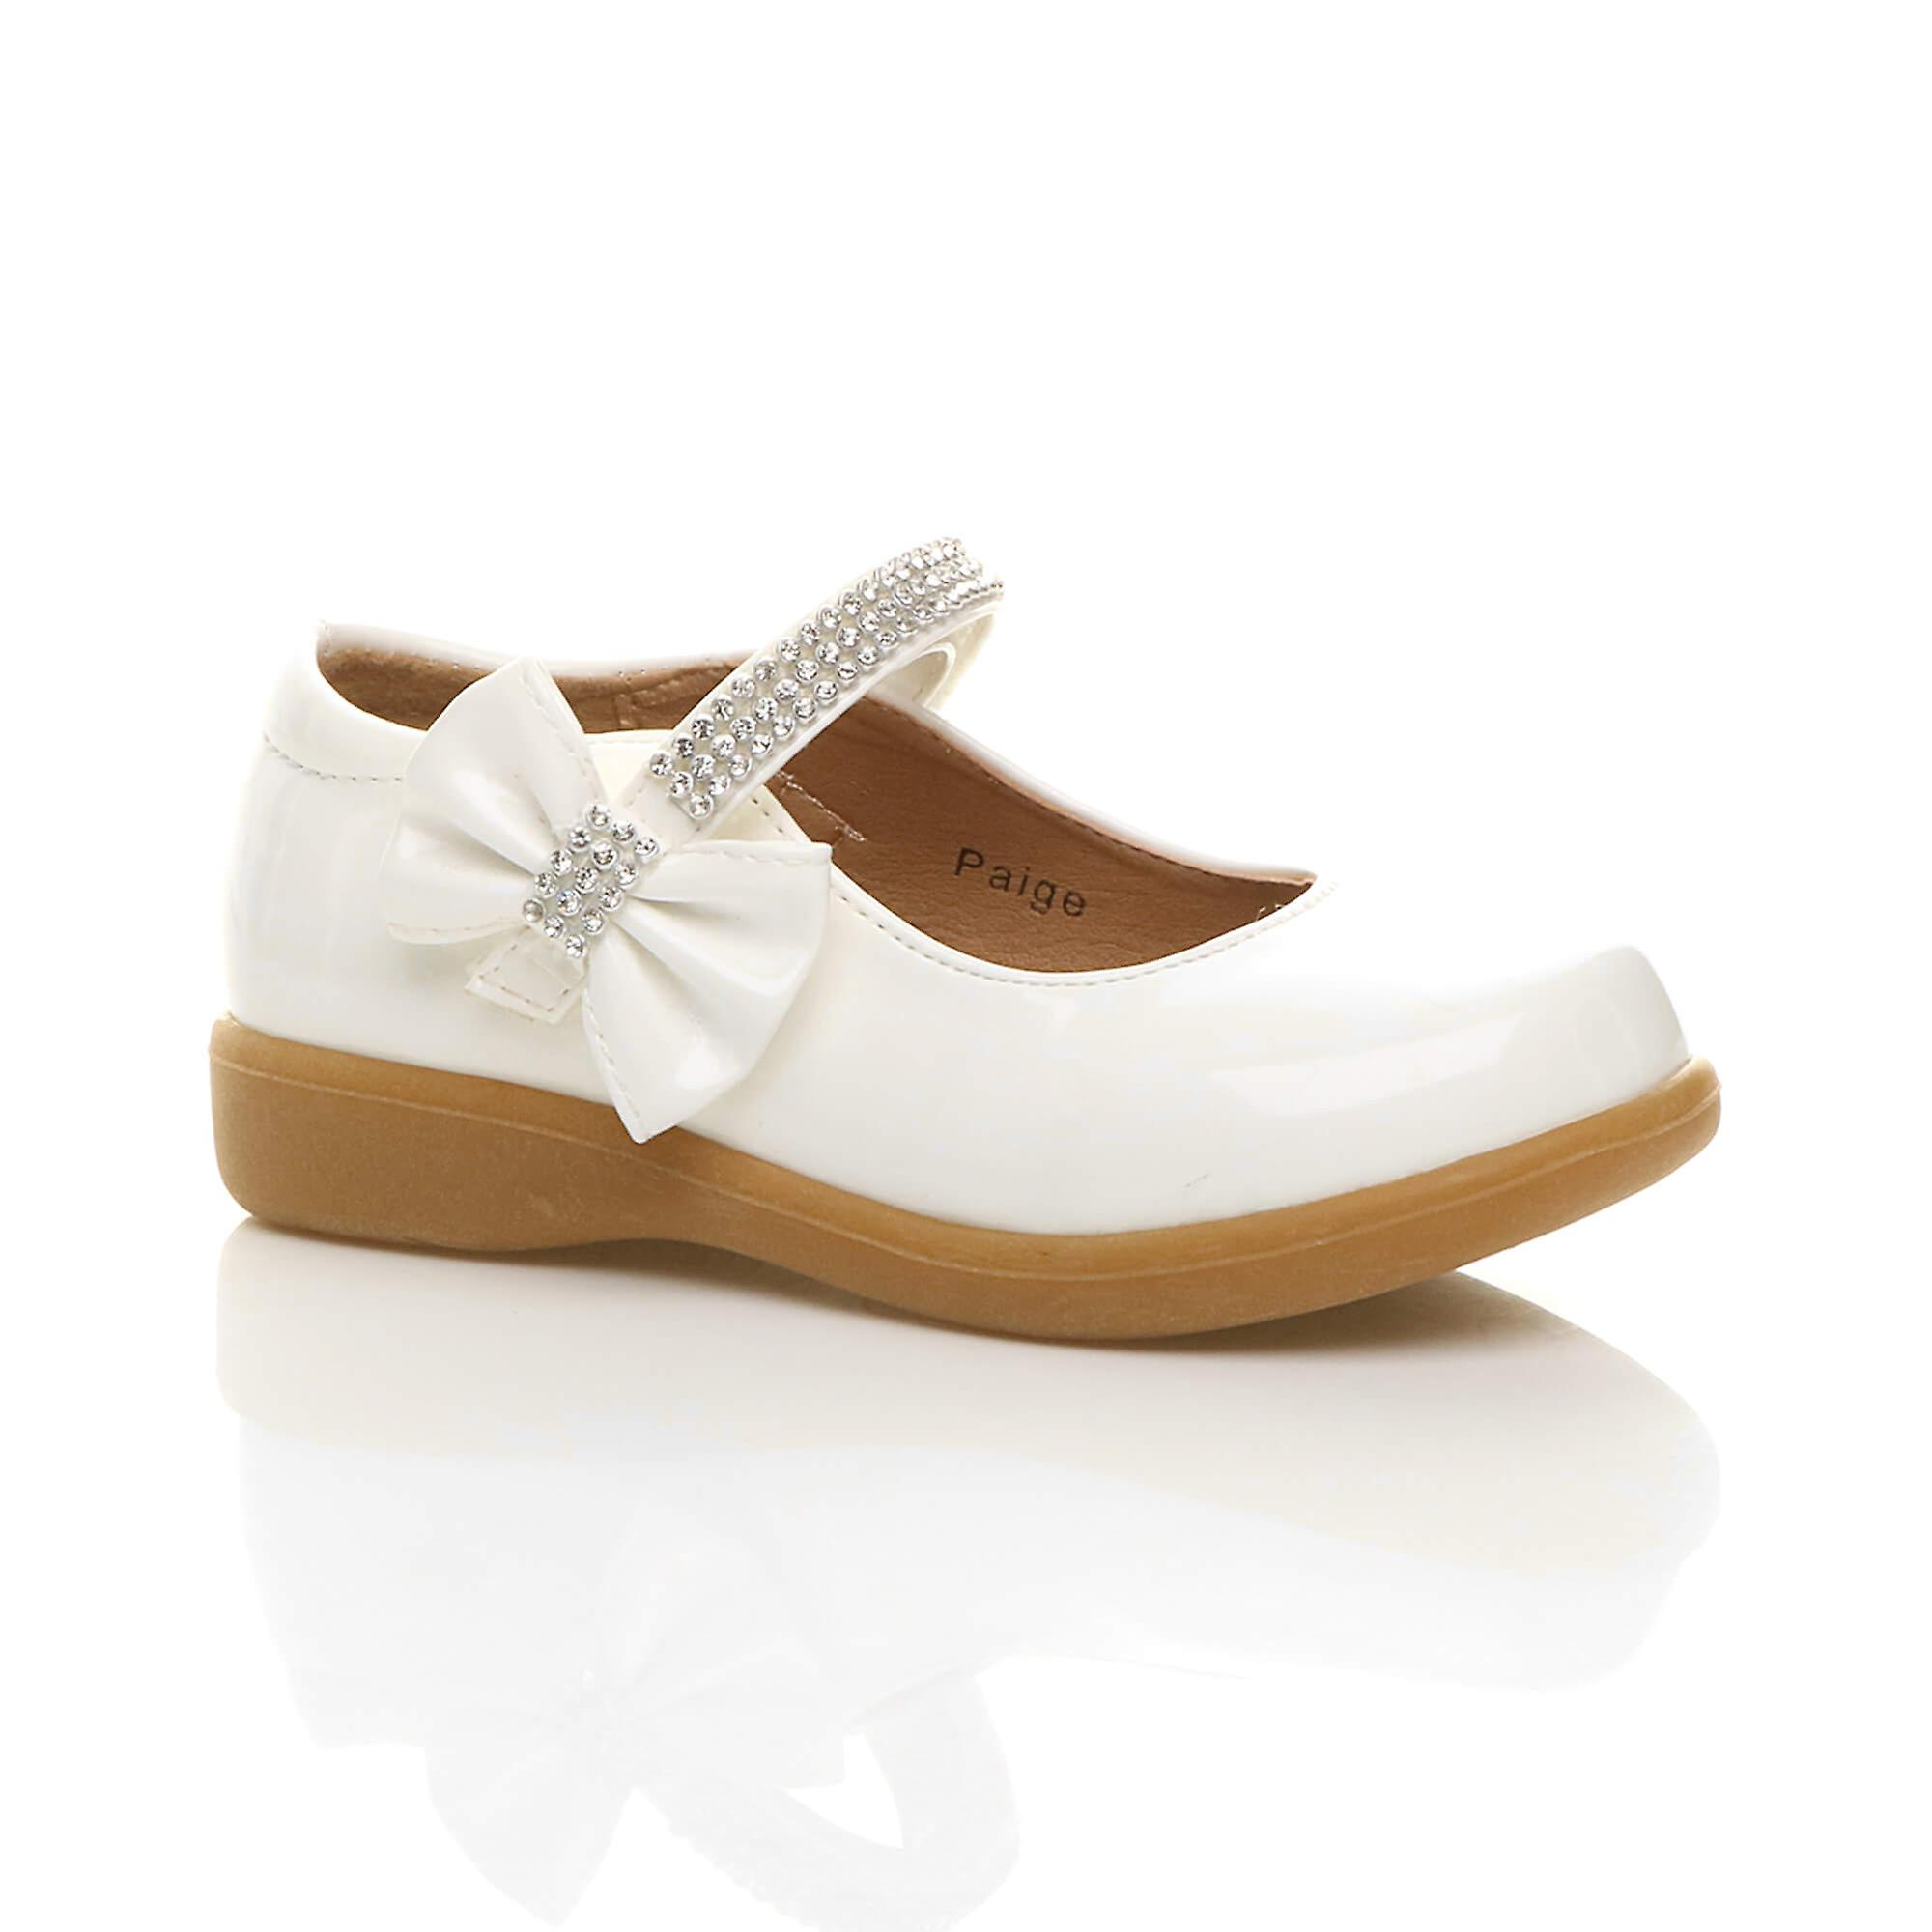 f412373a8ec Ajvani girls low heel mary jane strap bow party bridesmaid shoes ...